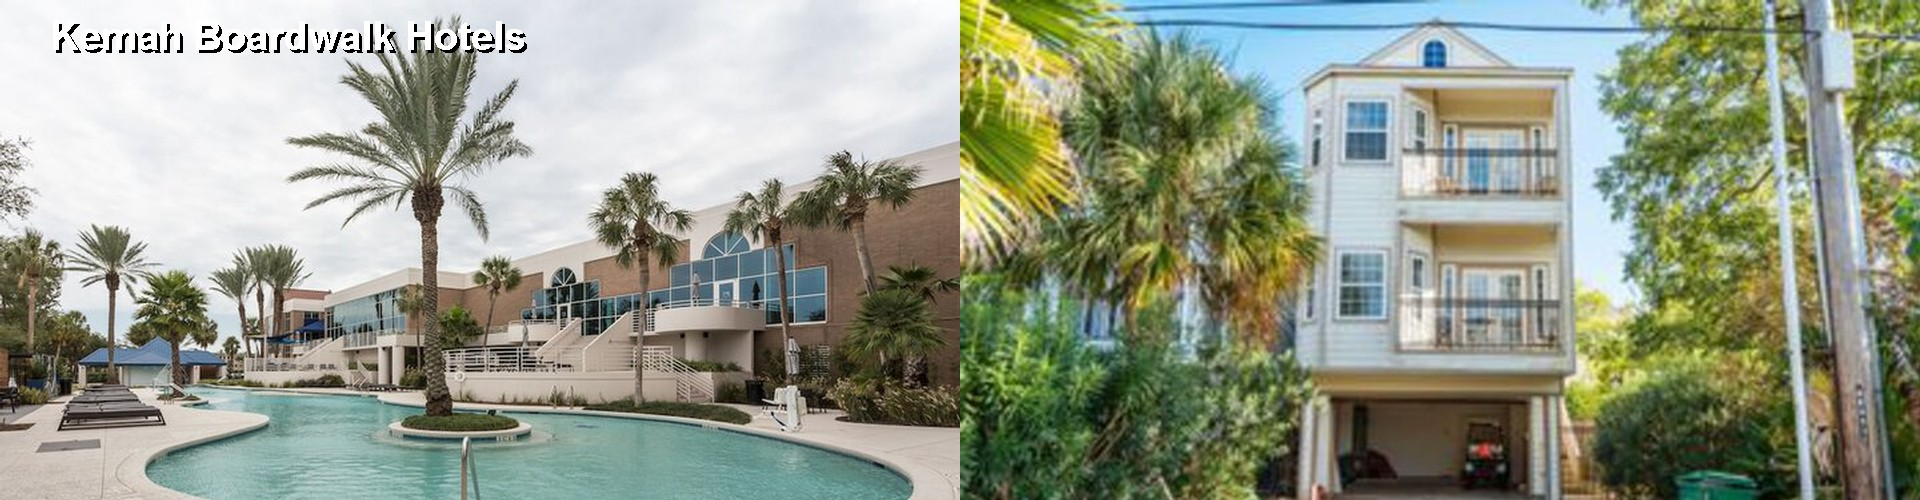 $42+ Hotels Near Kemah Boardwalk in Clear Lake City TX